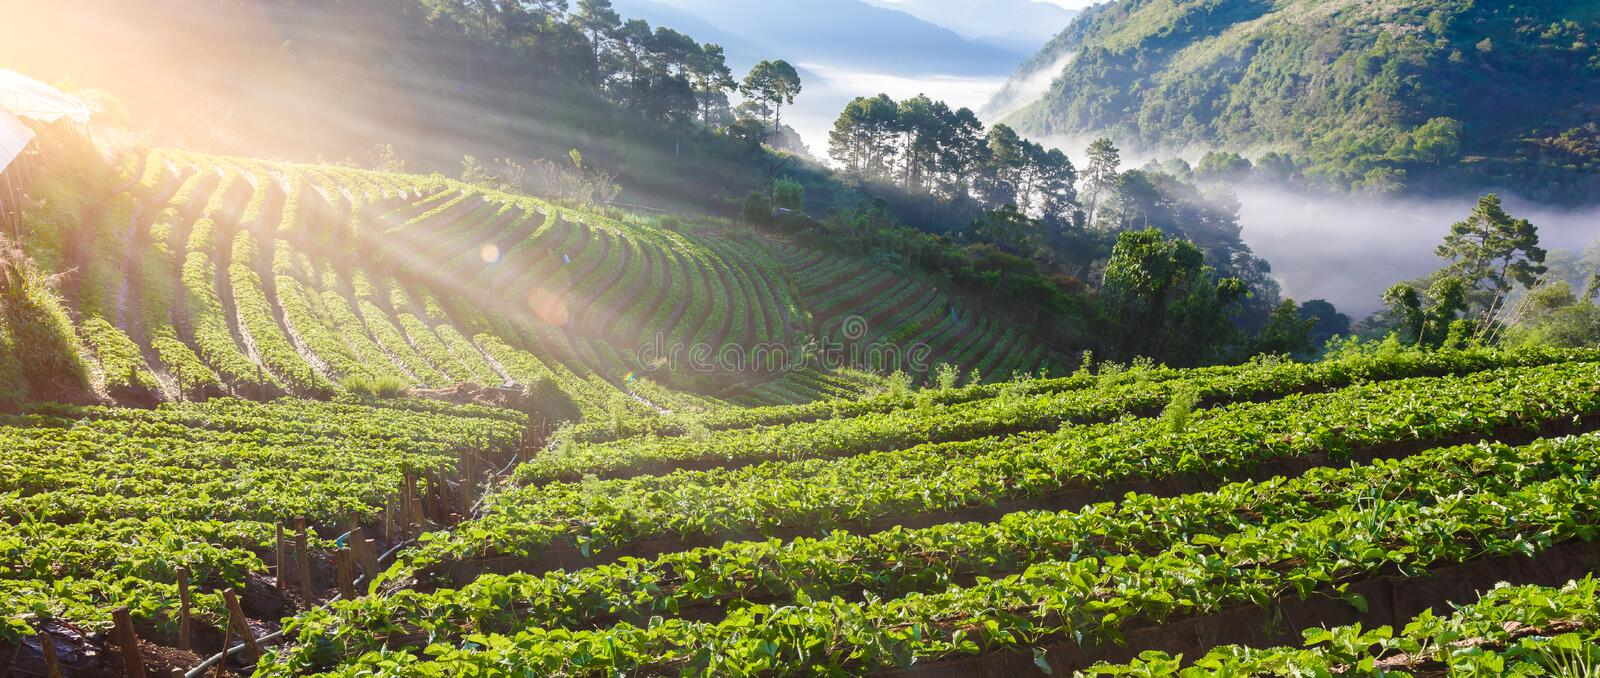 Strawberry farm array layer on hill at doi angkhang mountain, ch royalty free stock photos